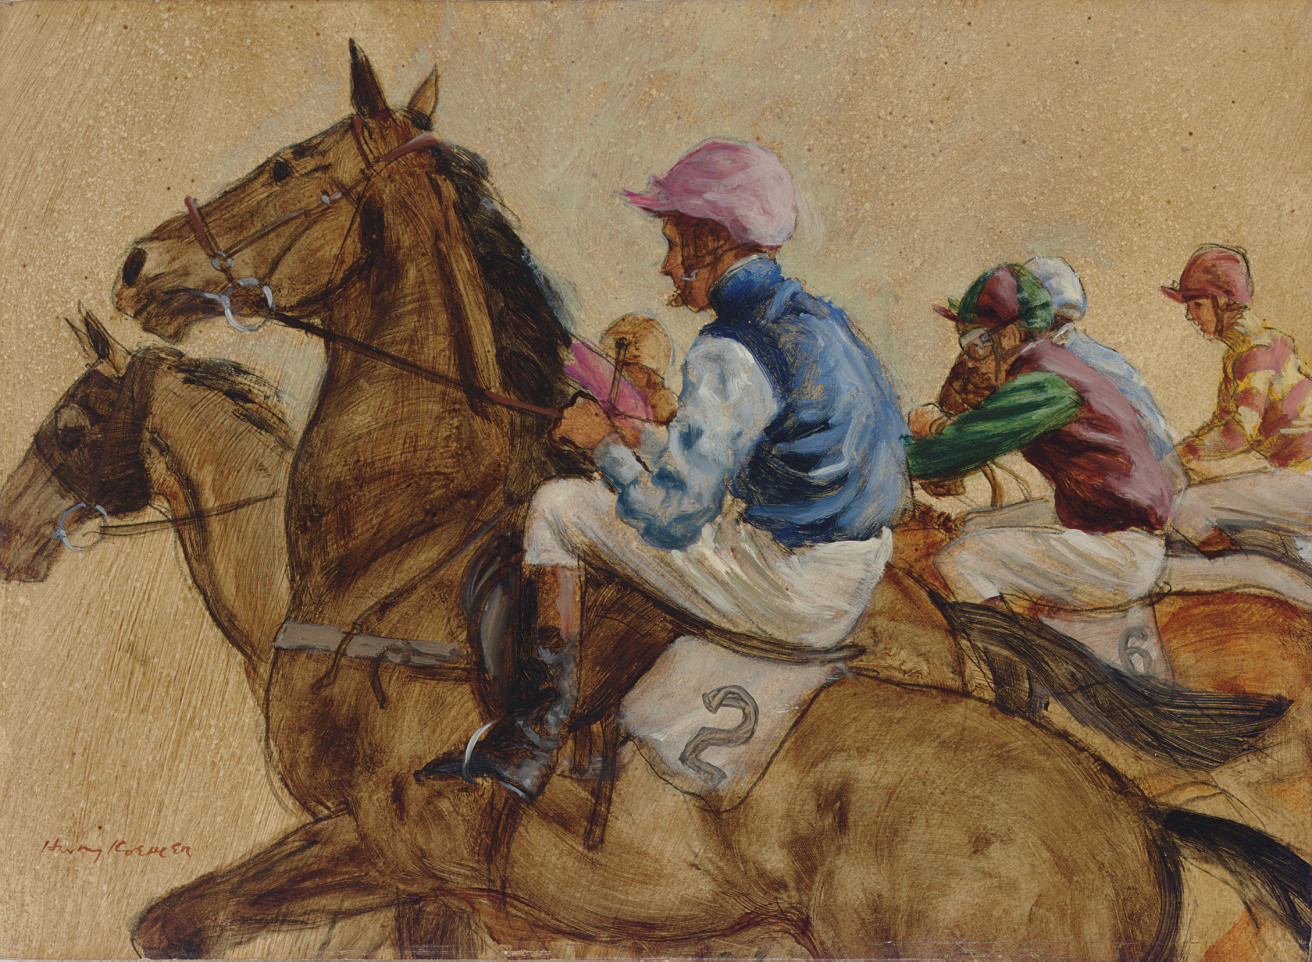 A National Hunt start: Racing in the colors of Sir John King, Lady Willoughby de Broke, Lord Cadogan and Lord Rosebury